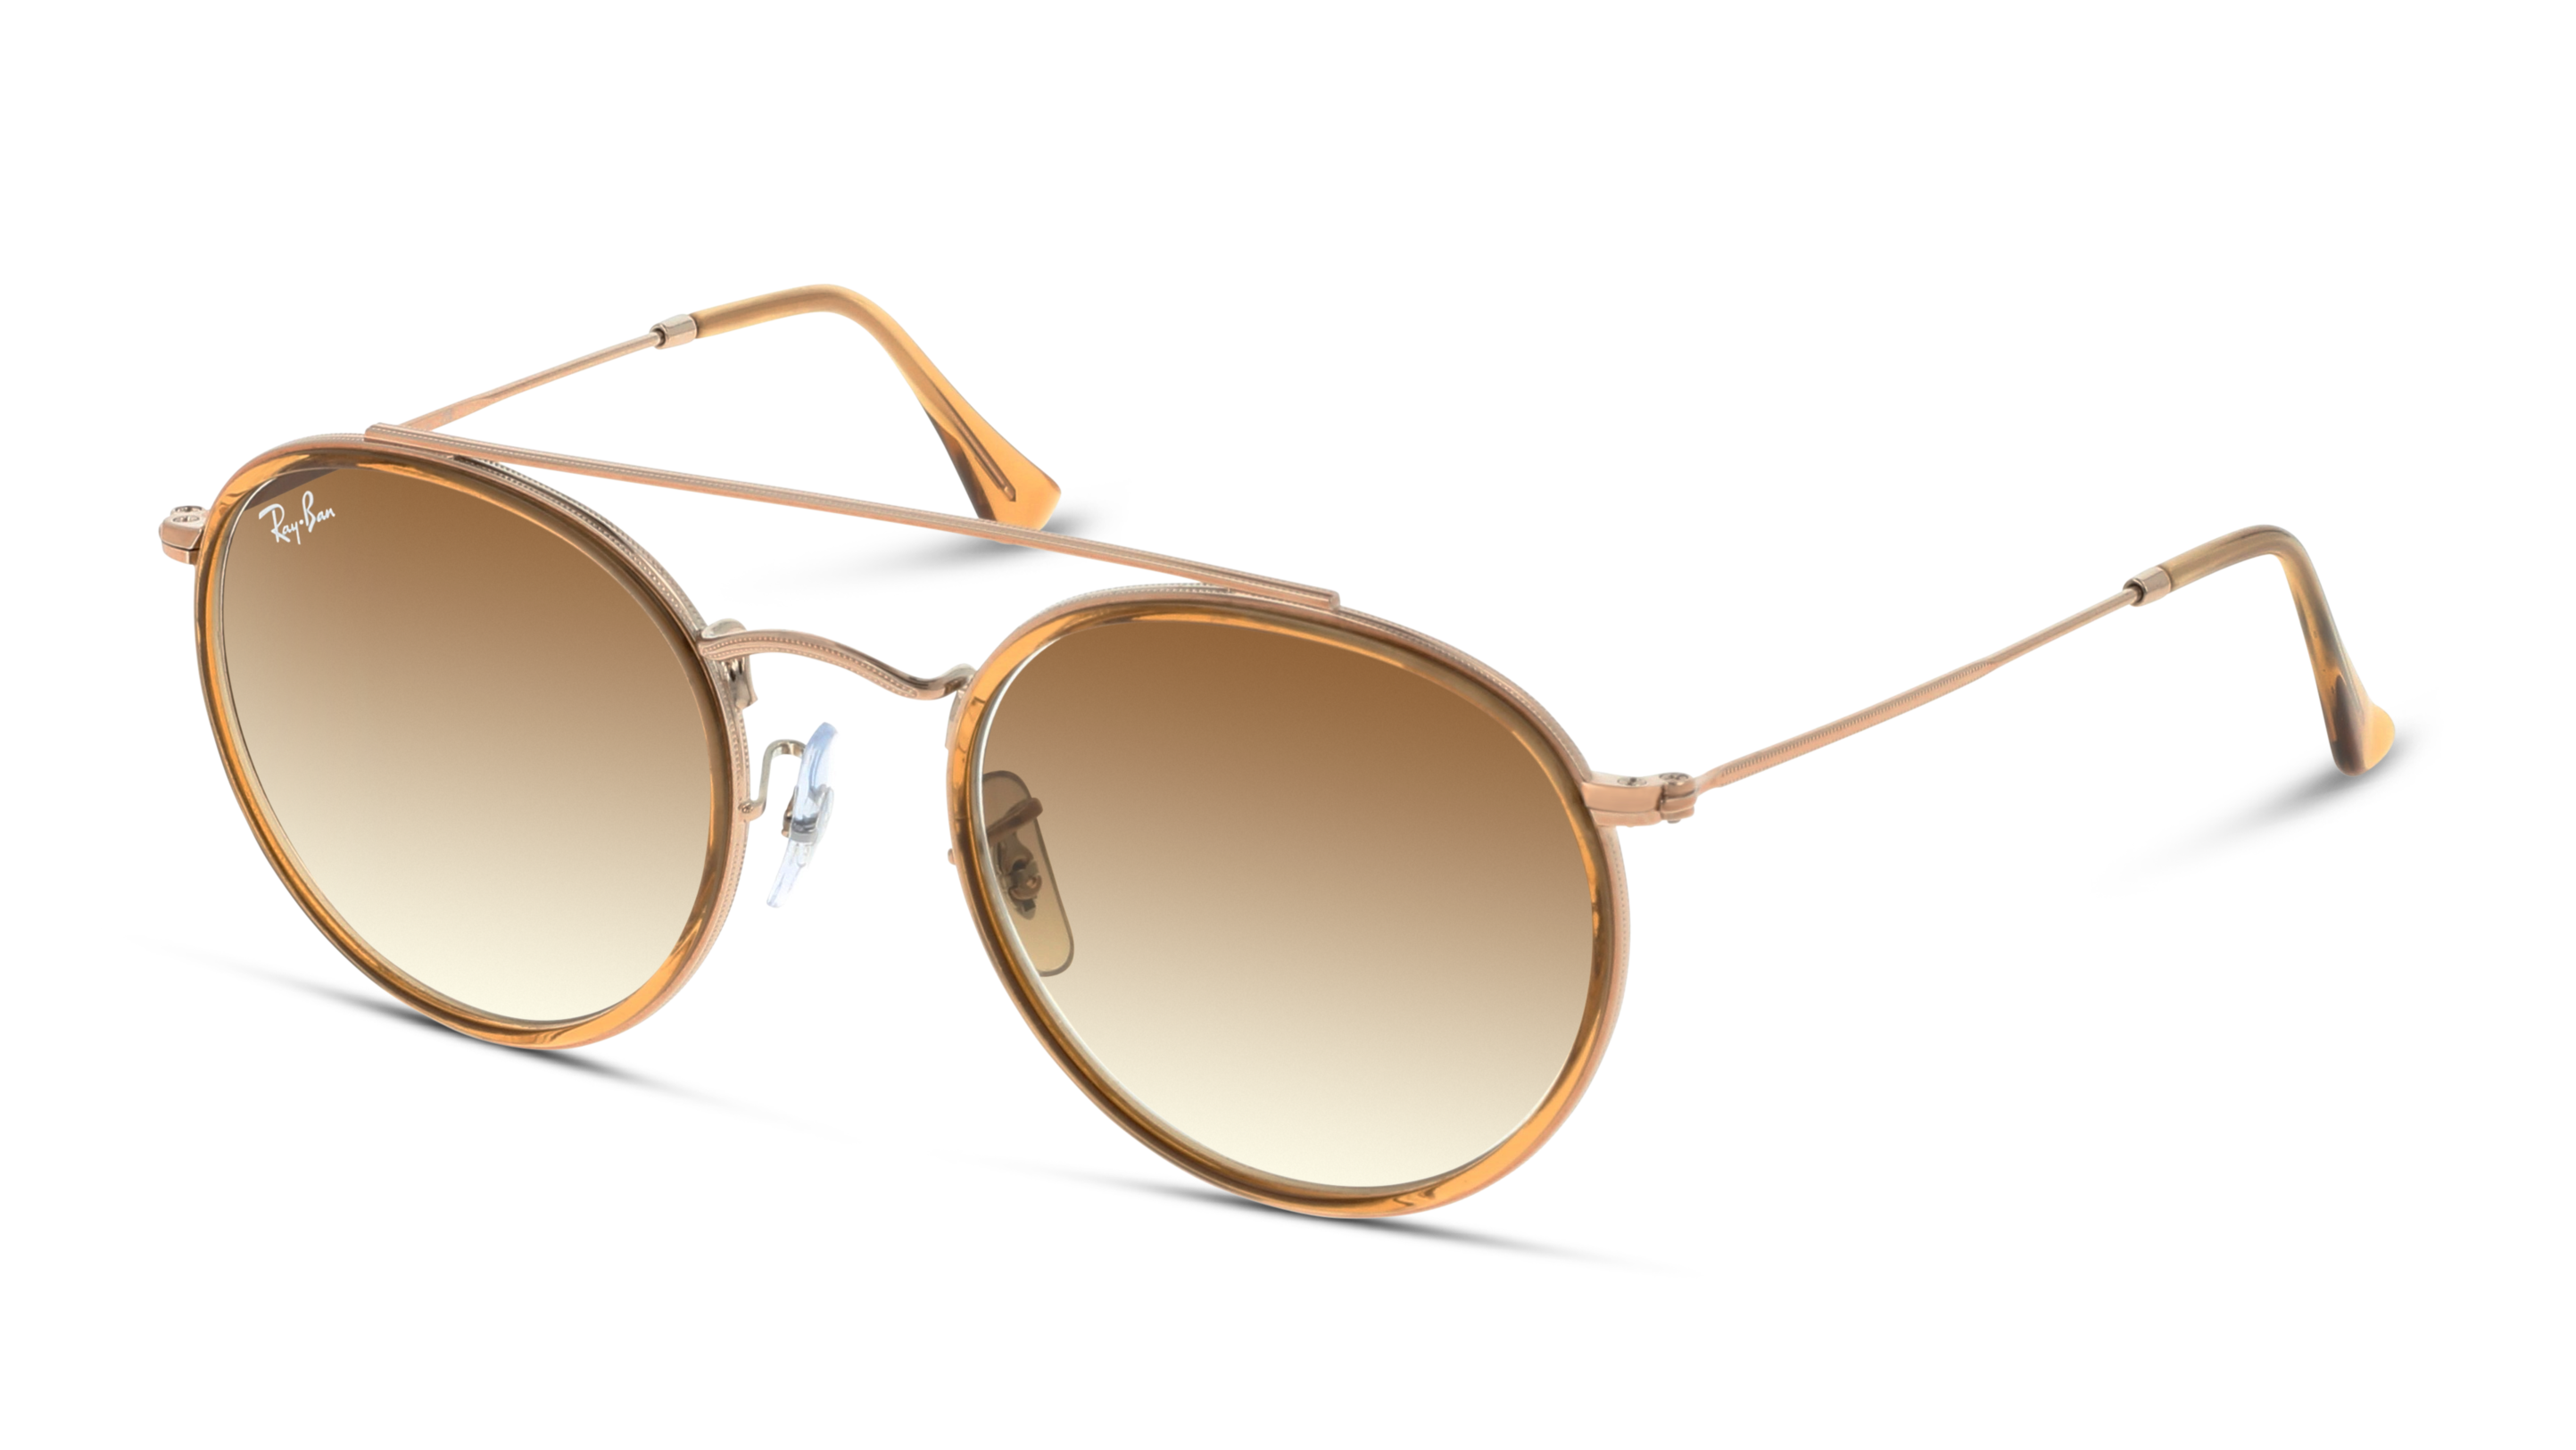 Angle_Left01 Ray-Ban Ray-Ban 0RB3647N 907051 51/22 Zilver, Bruin/Bruin